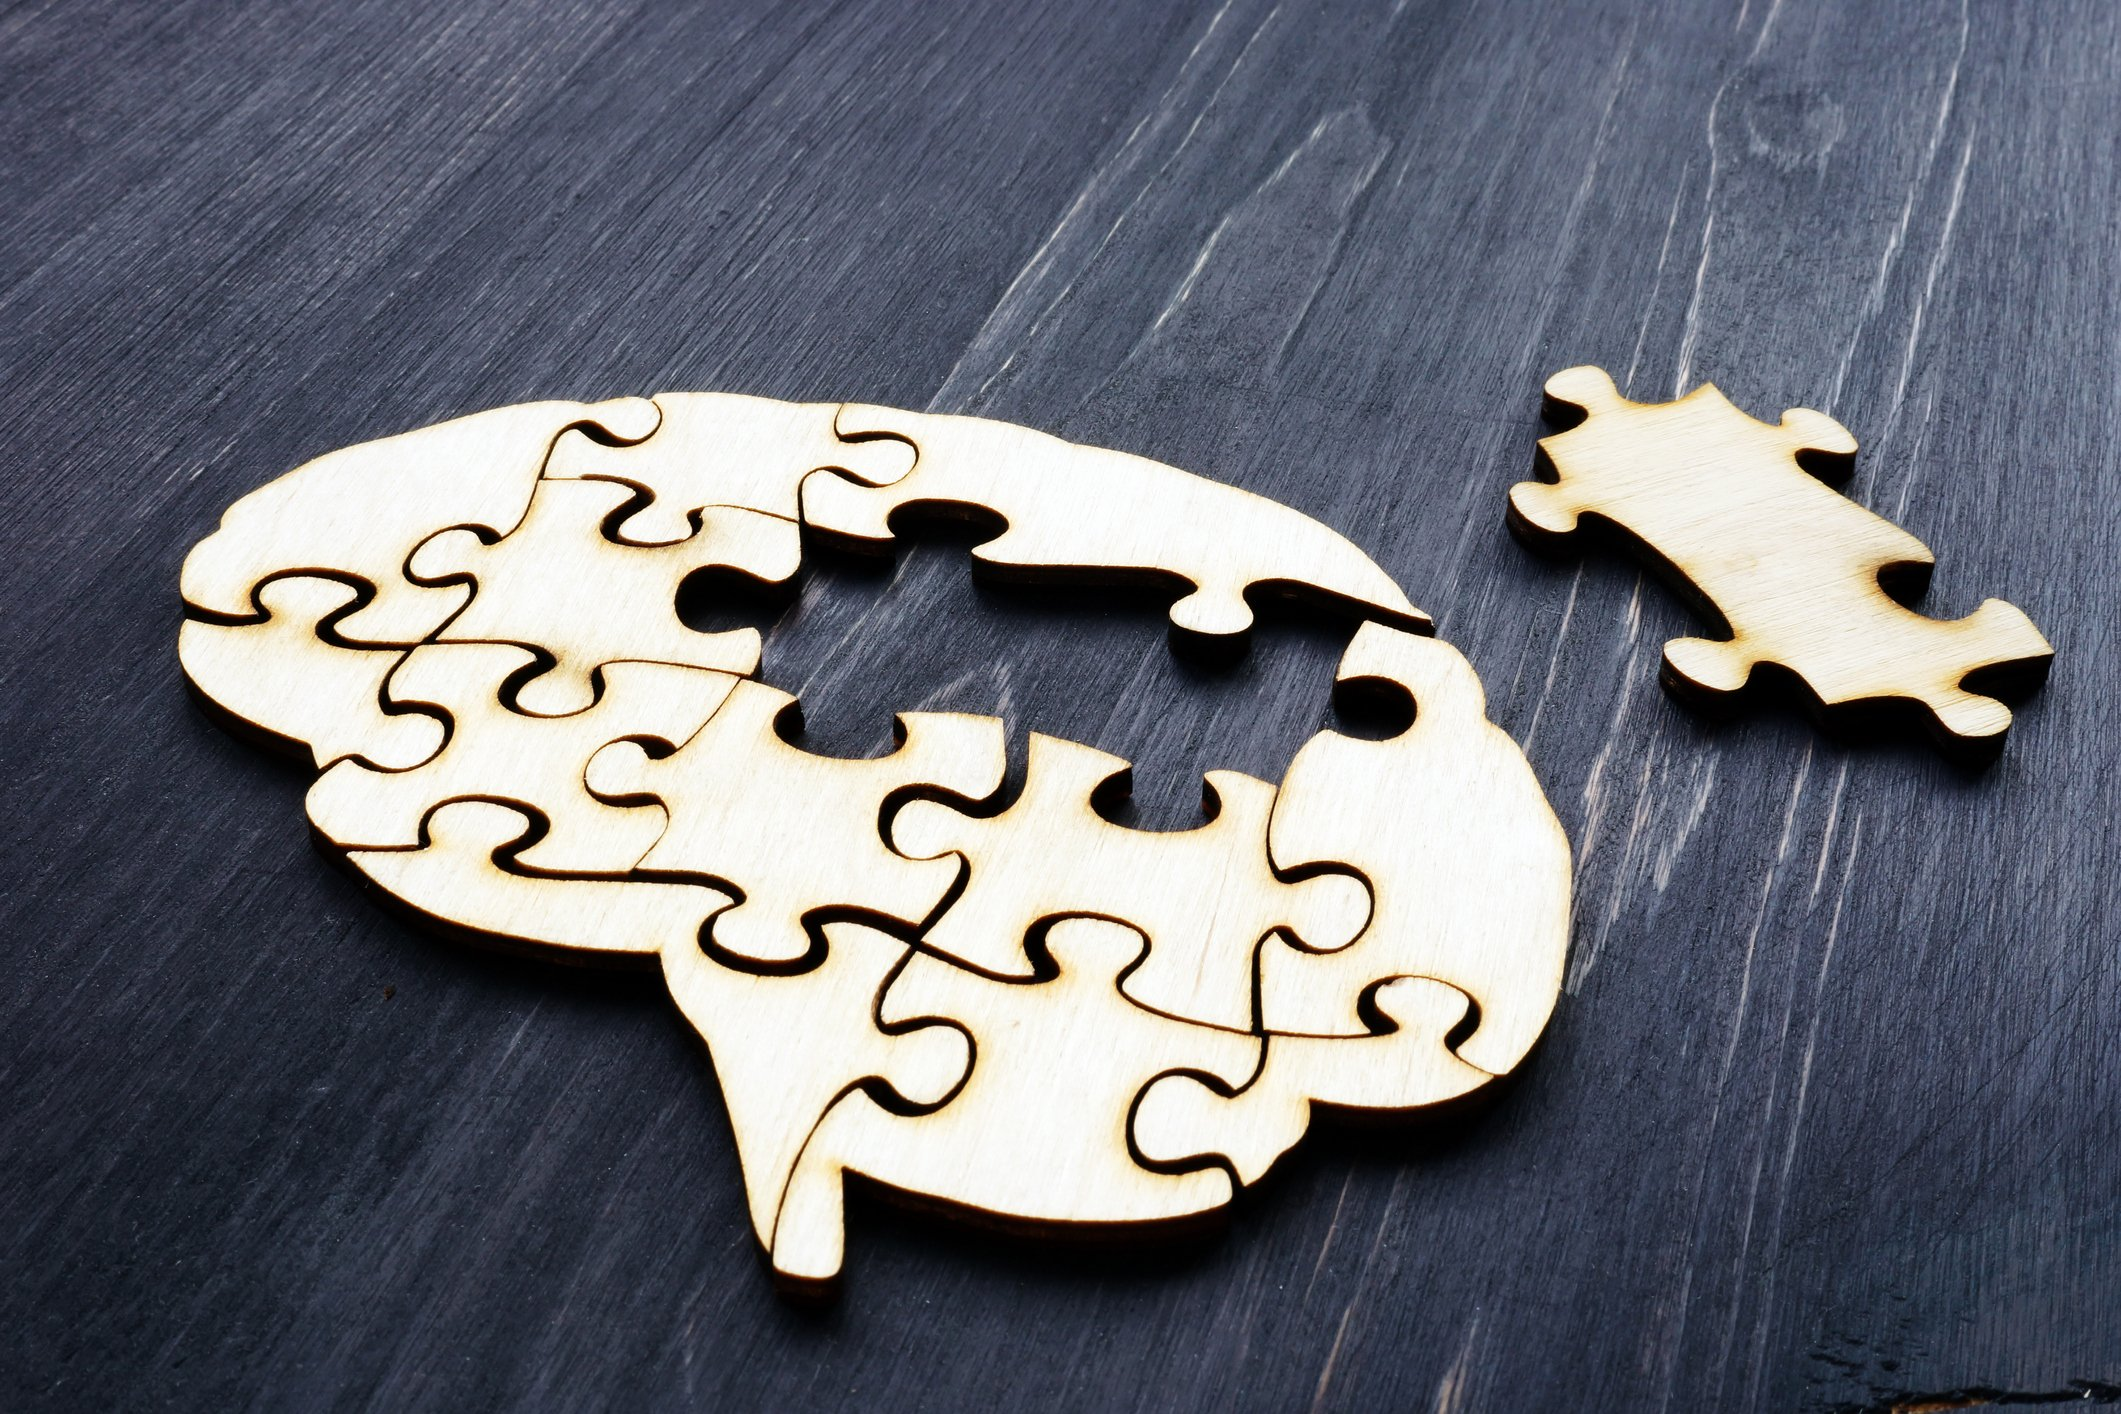 Gehirn aus Holzpuzzle. I Source: Getty Images